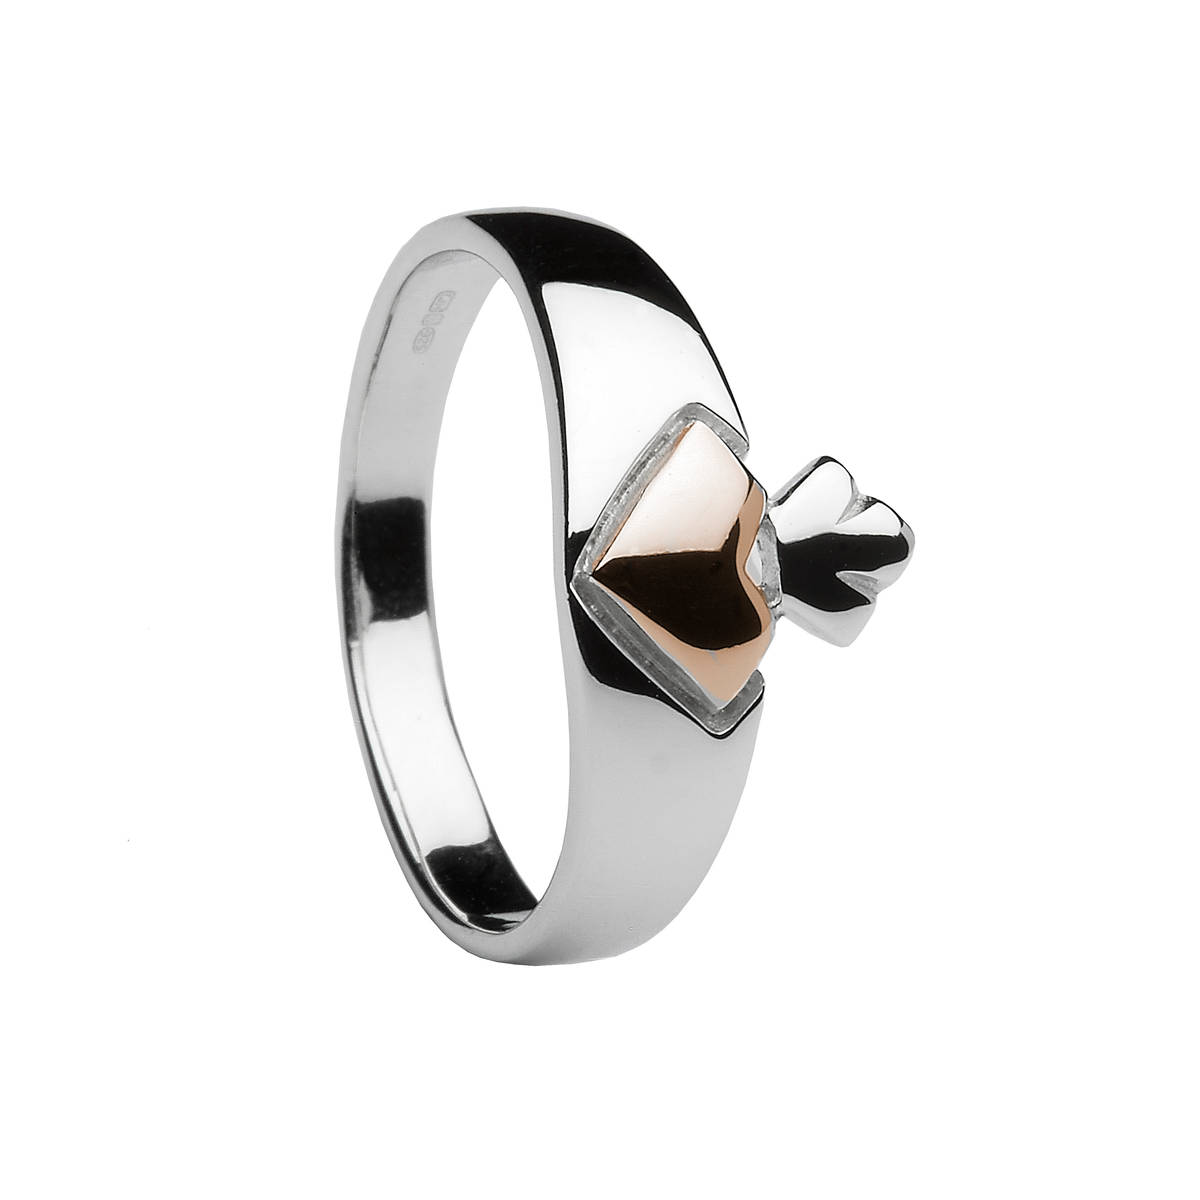 House of Lor silver/rose gold Claddagh ring heart made from rare Irish goldnpck/doack